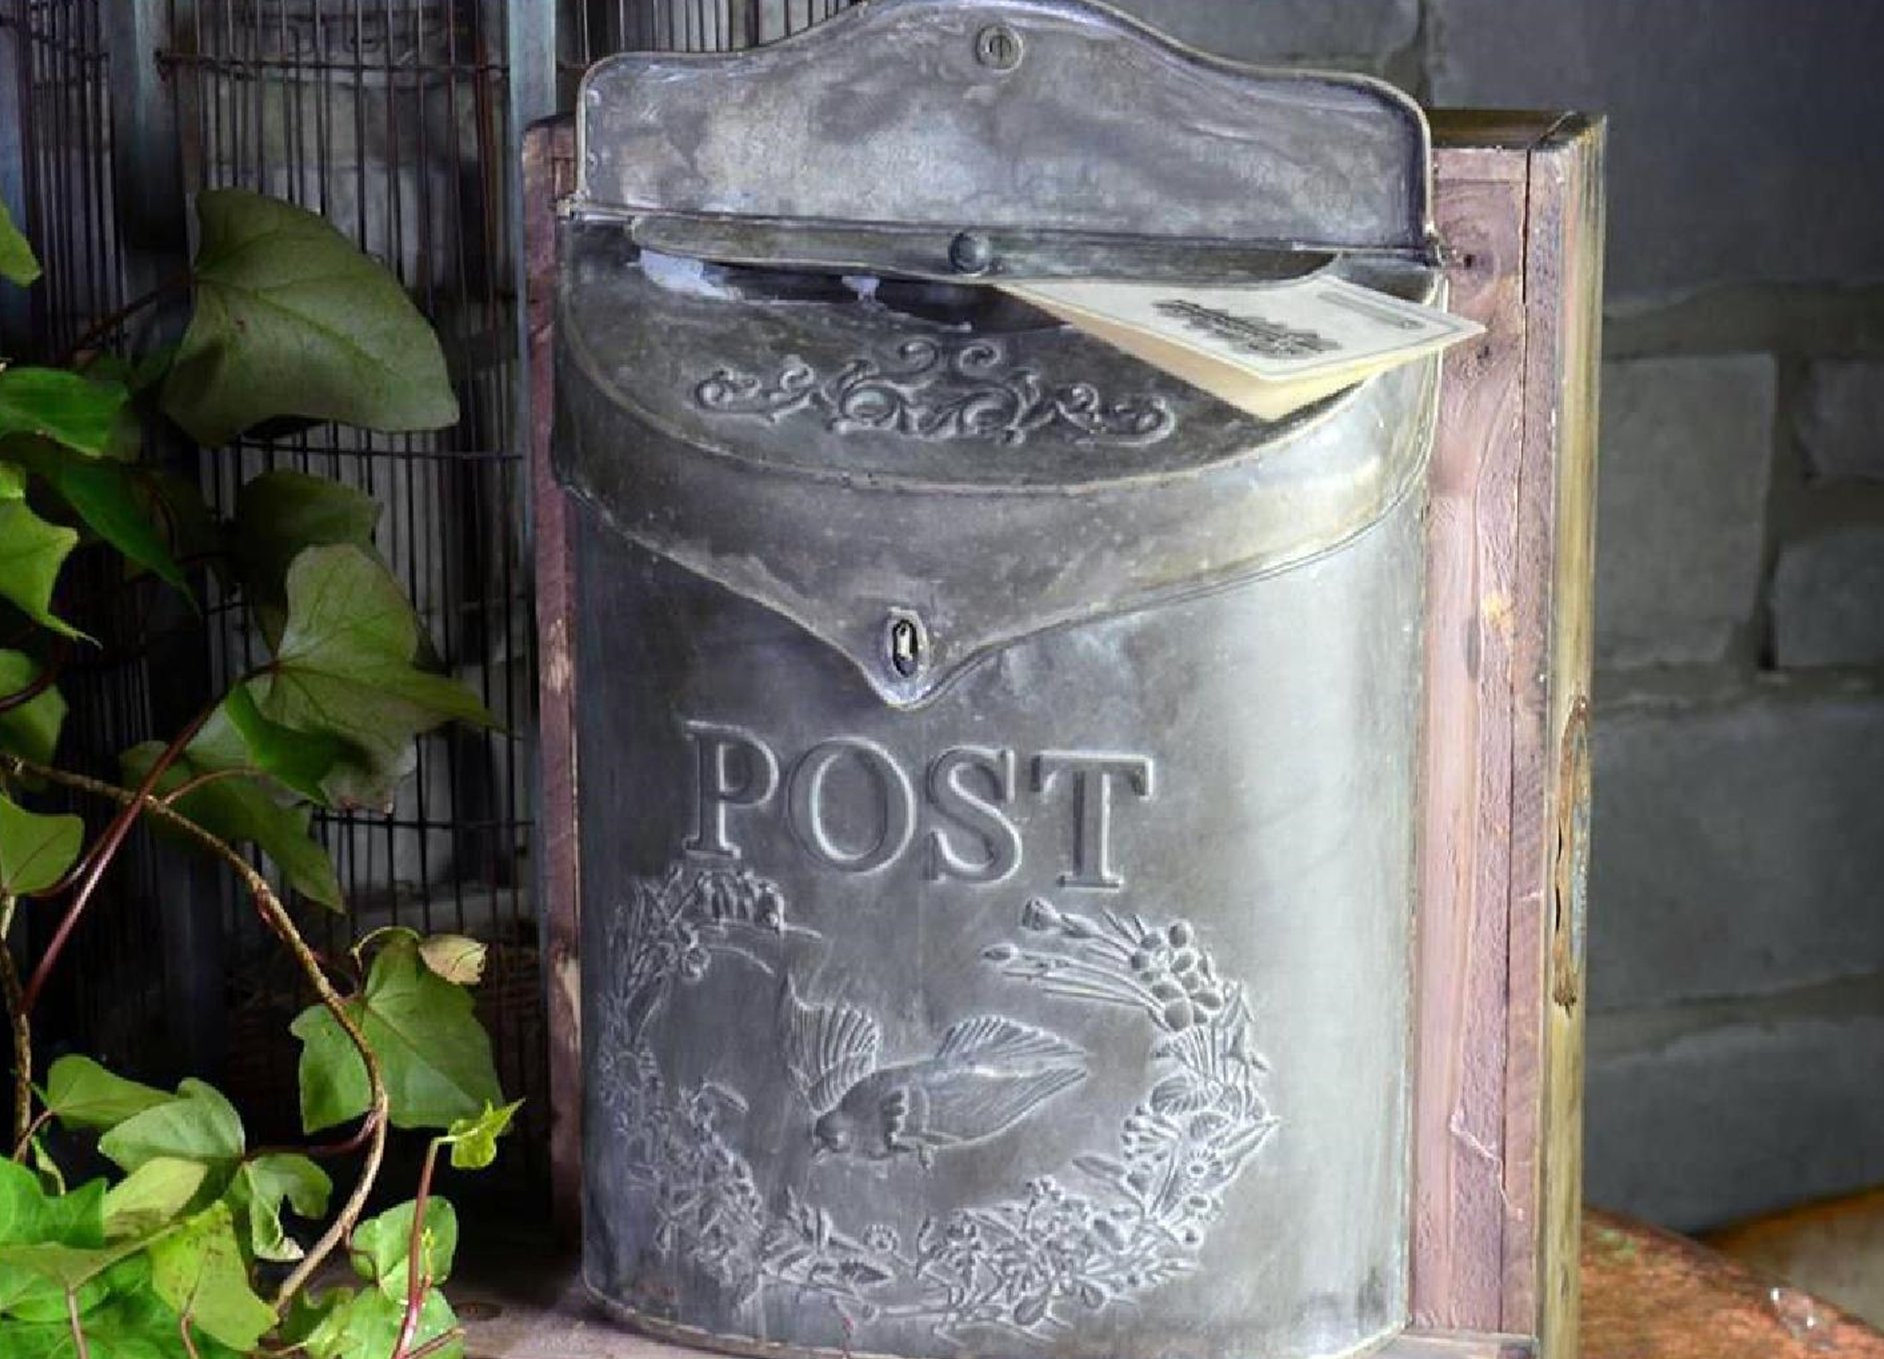 Vintage Metal Post Letter Mail Box with Carrier Pigeon and Letter Slot